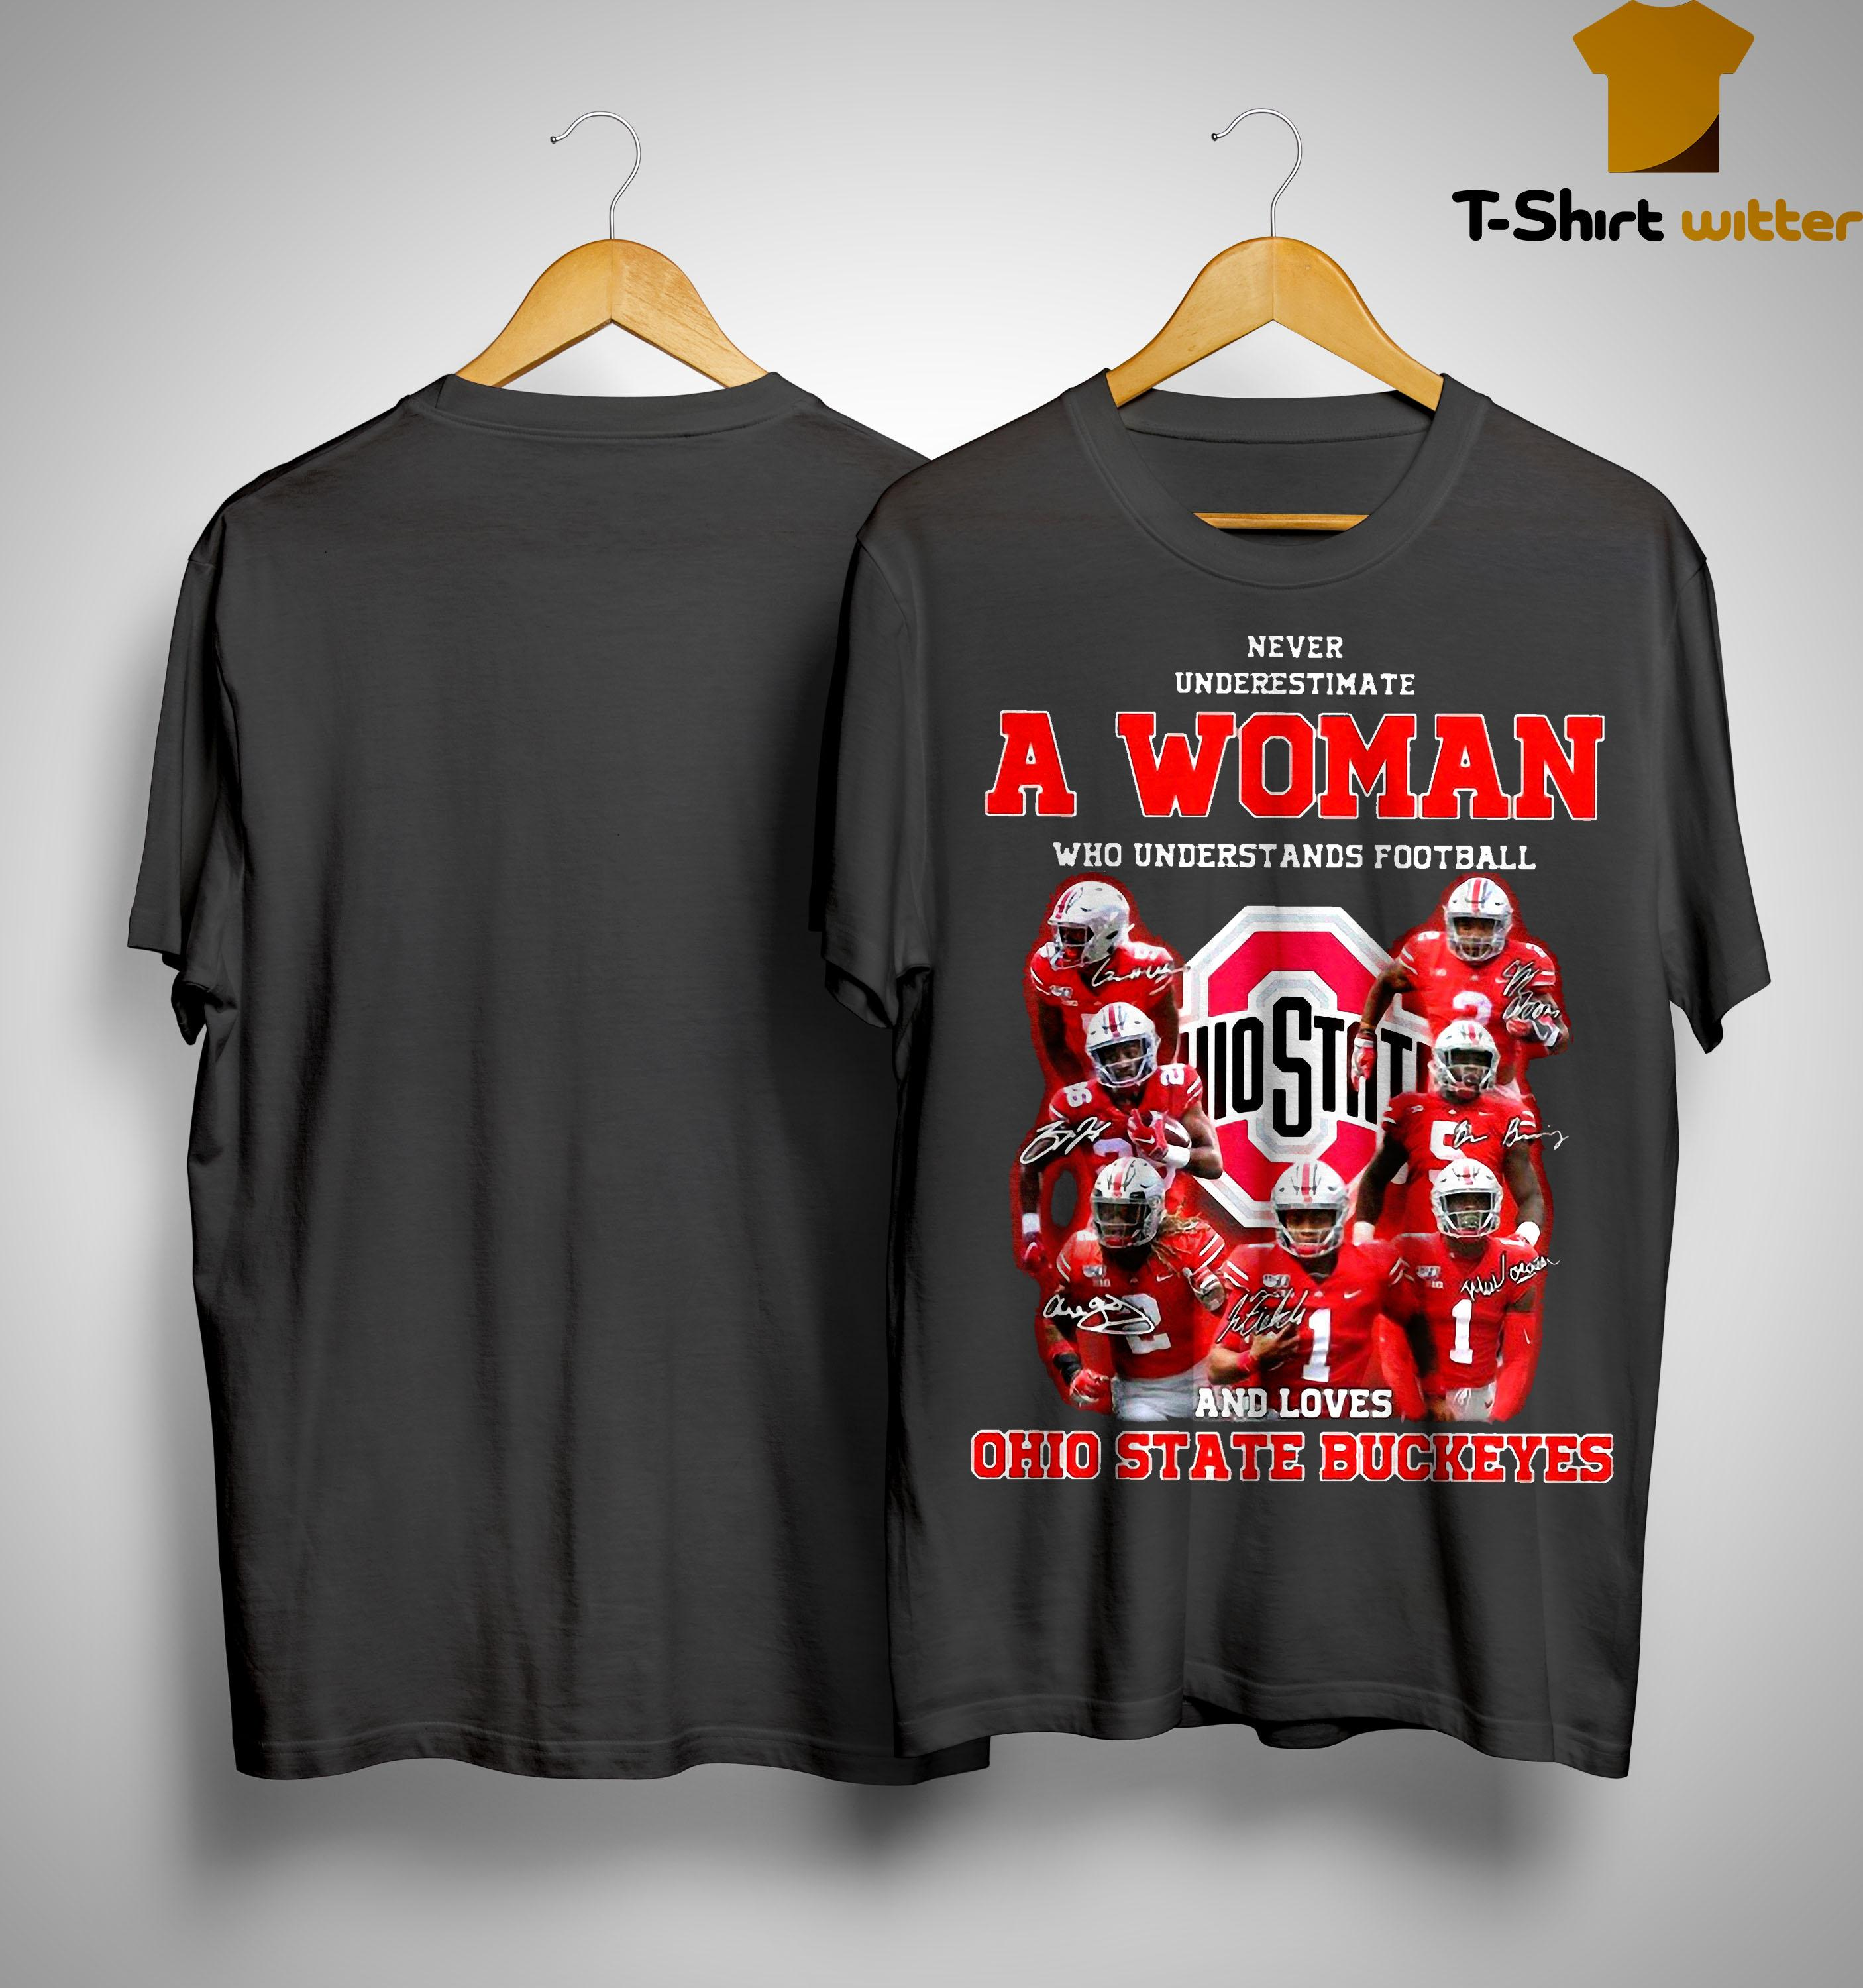 Never Underestimate A Woman Who Understands Football And Loves Ohio State Buckeyes Shirt